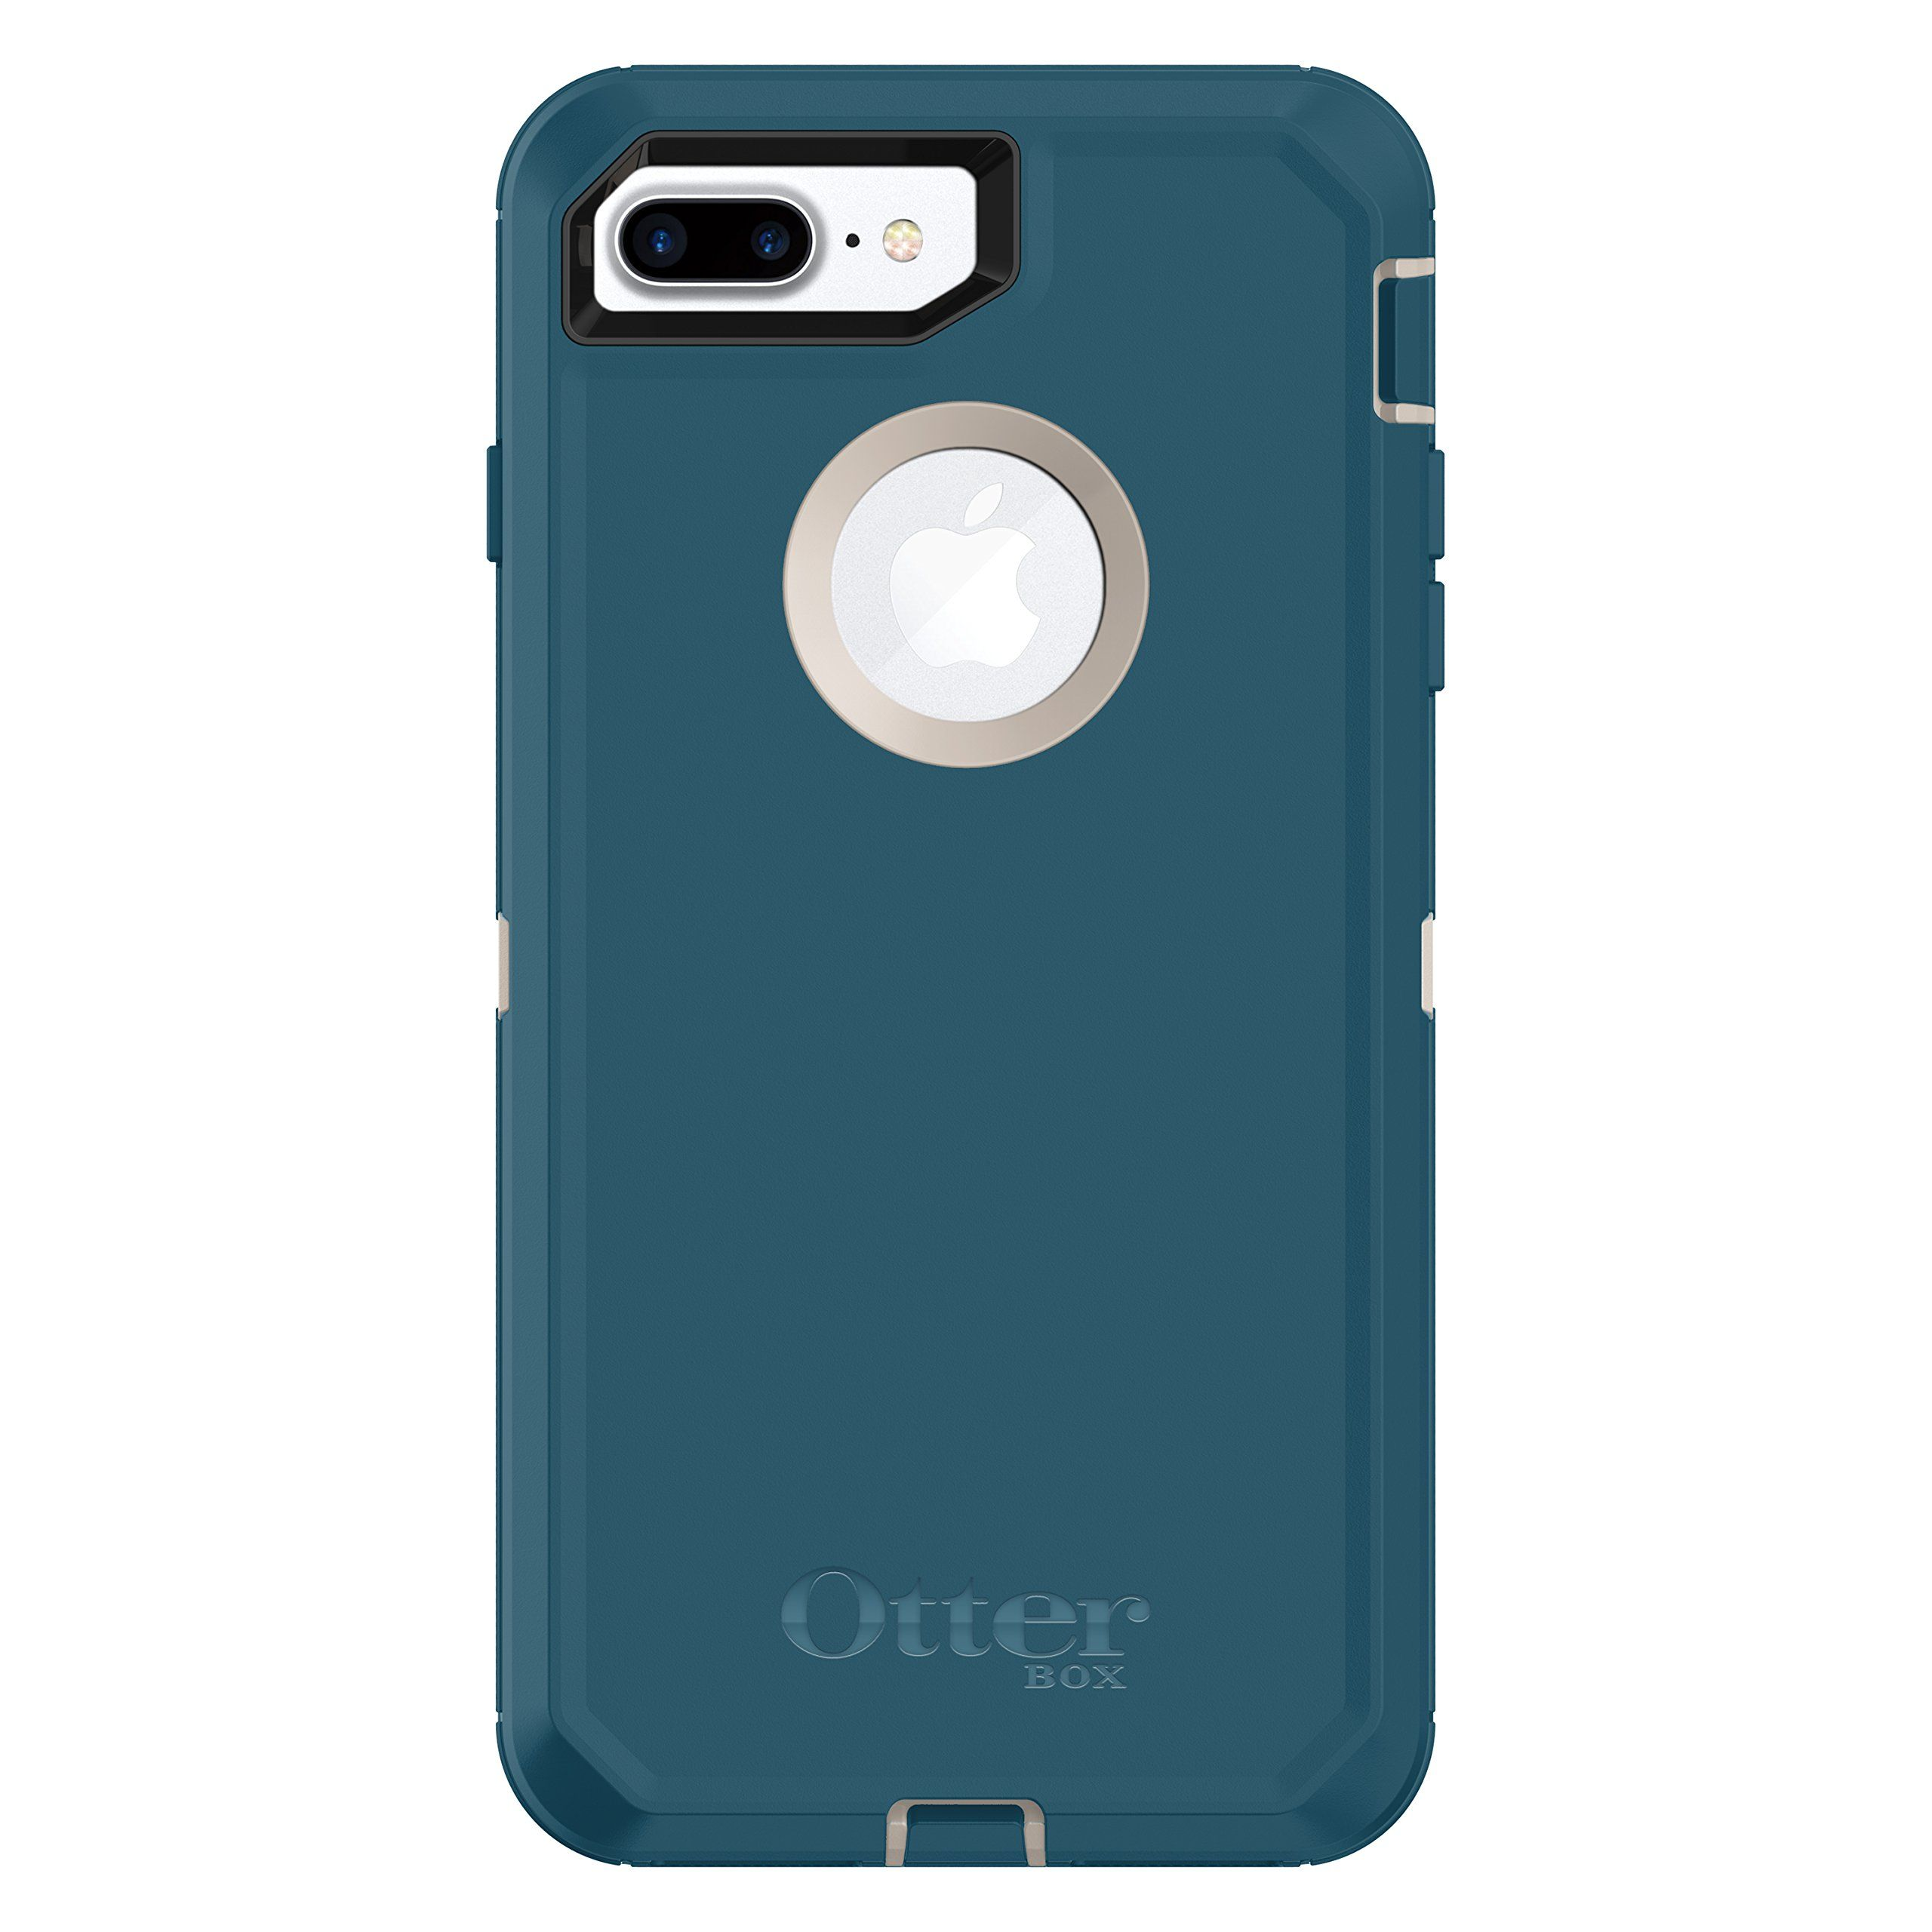 Otterbox defender series case for iphone 8 plus iphone 7